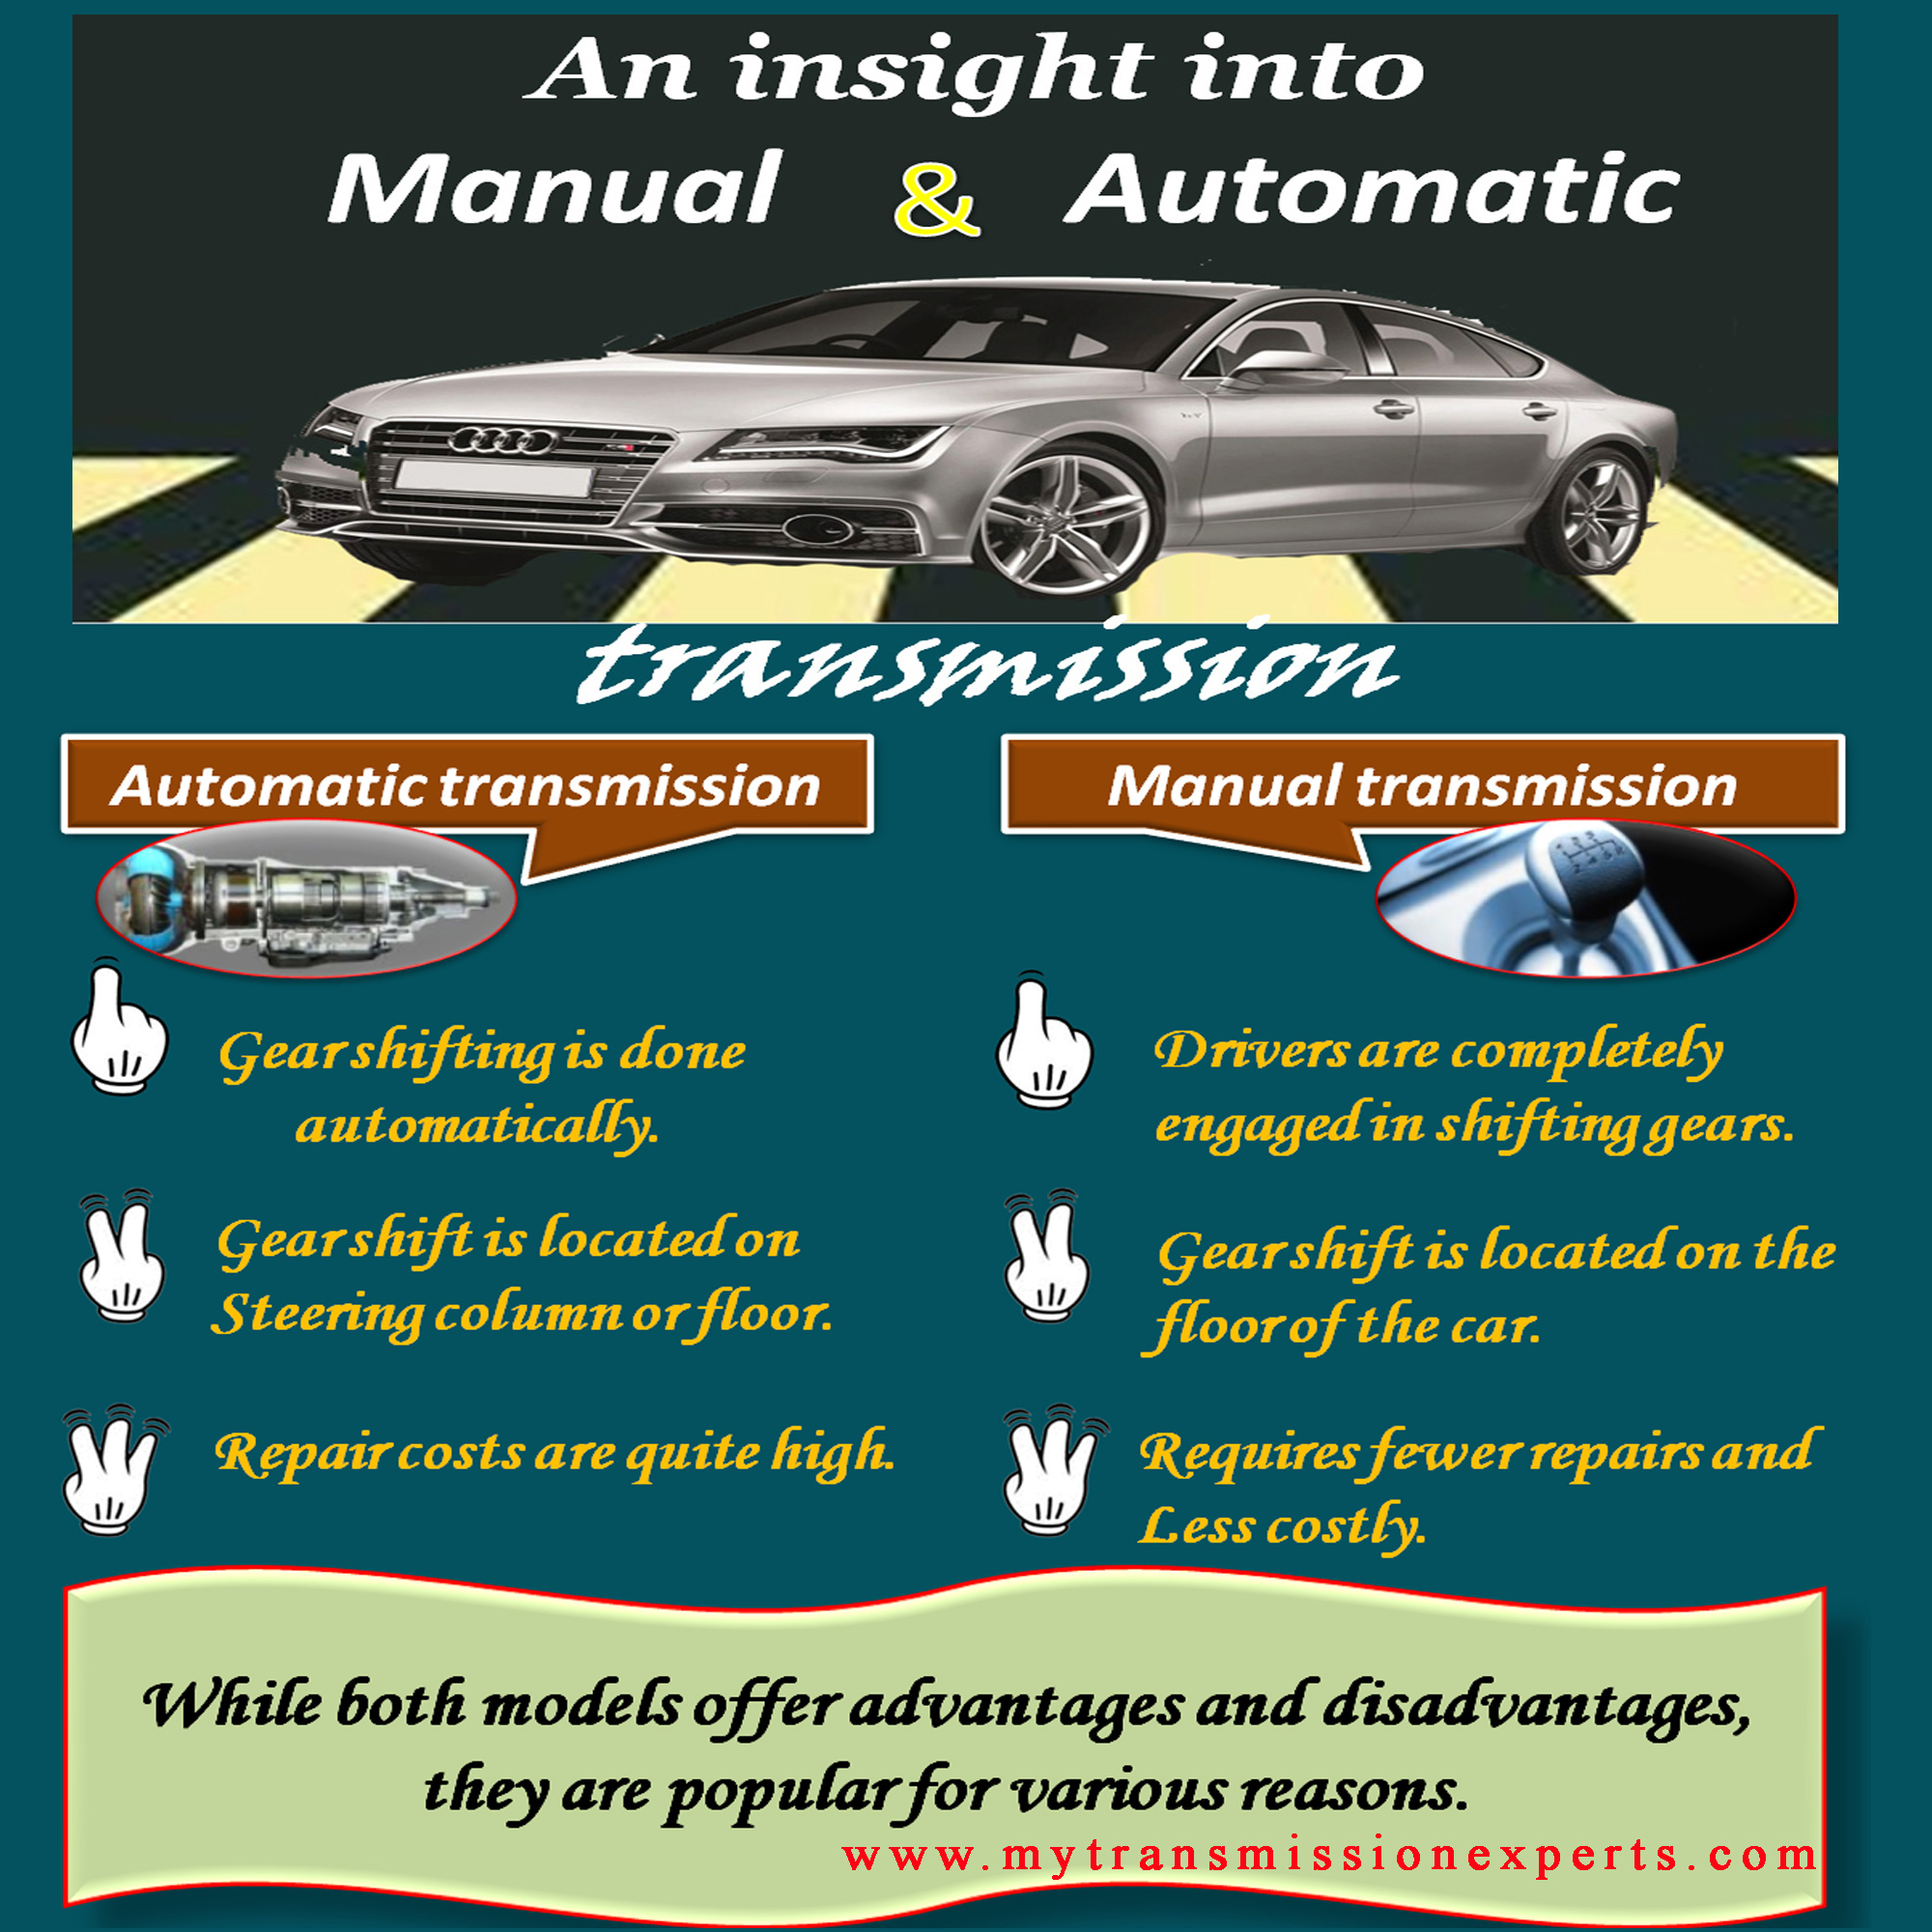 manual vs automatic transmission There are distinct advantages to automatic & manual transmissions in modern  vehicles which transmission a driver prefers depends on a variety of factors.